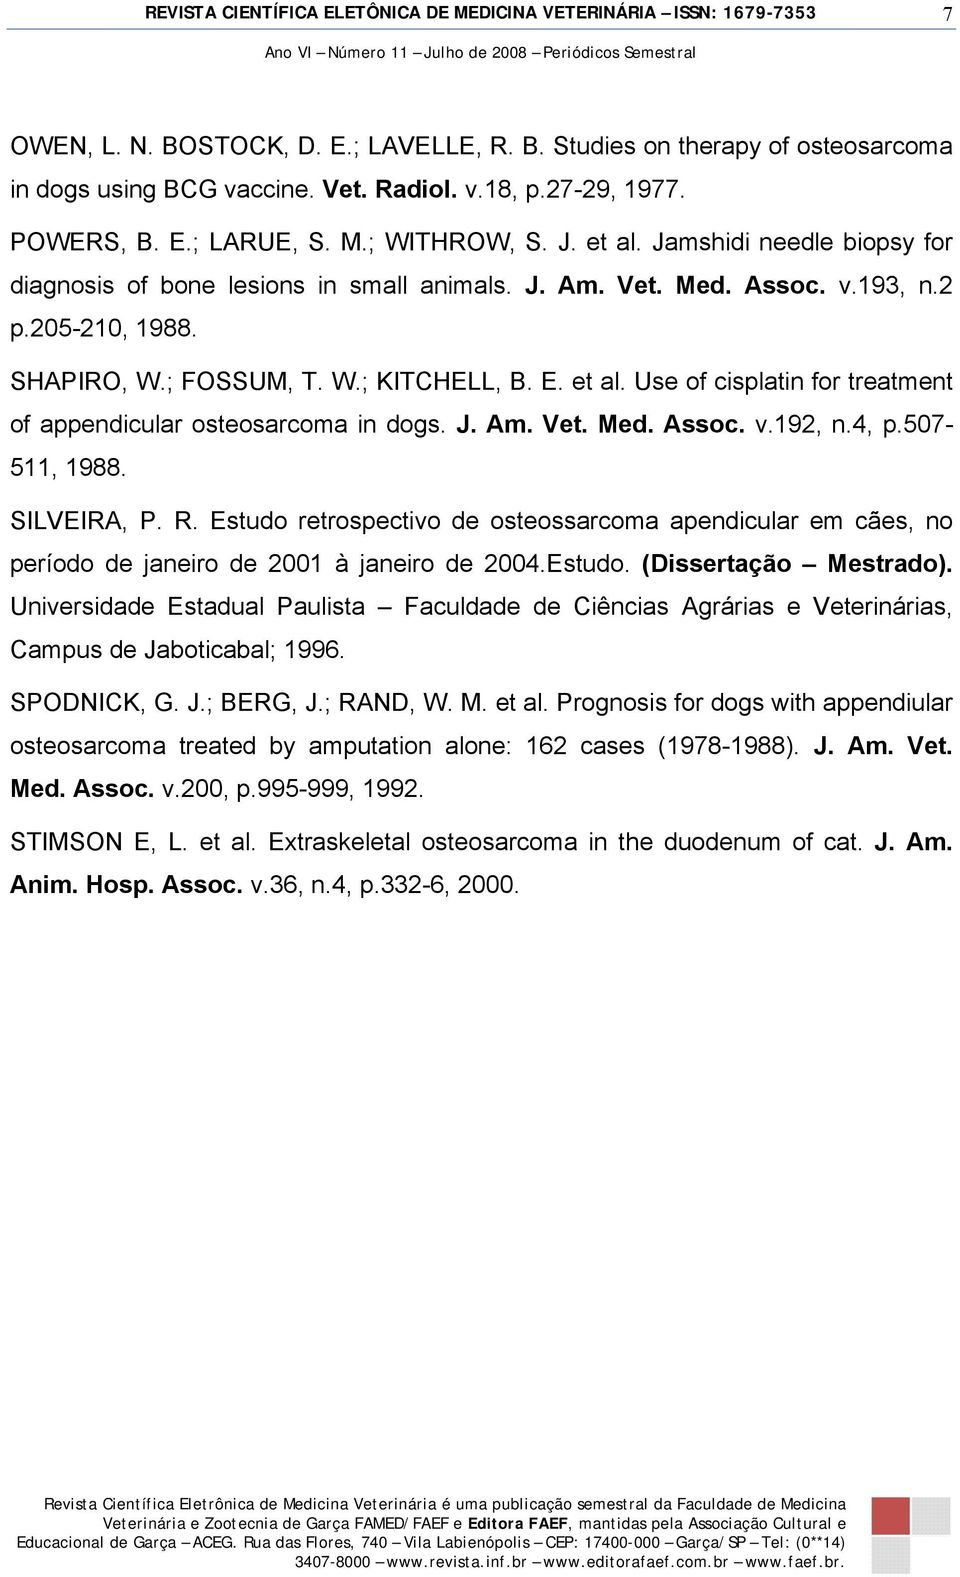 Use of cisplatin for treatment of appendicular osteosarcoma in dogs. J. Am. Vet. Med. Assoc. v.192, n.4, p.507-511, 1988. SILVEIRA, P. R.